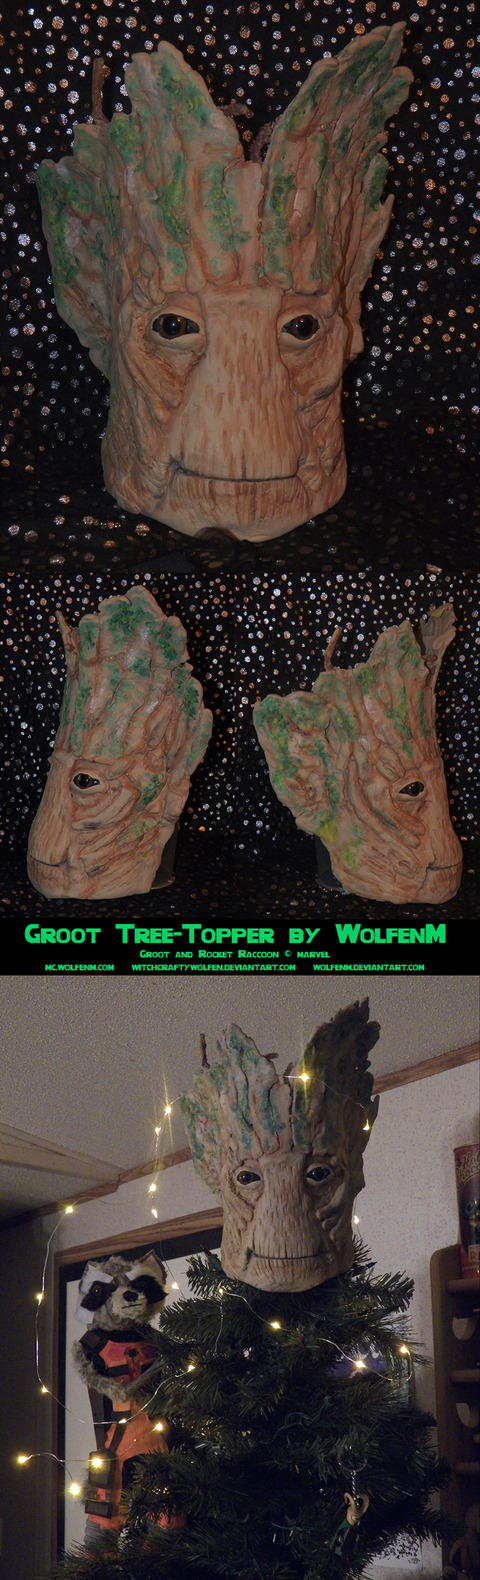 gotg-groot-tree-topper-by-witchcraftywolfen-d88657d-114659